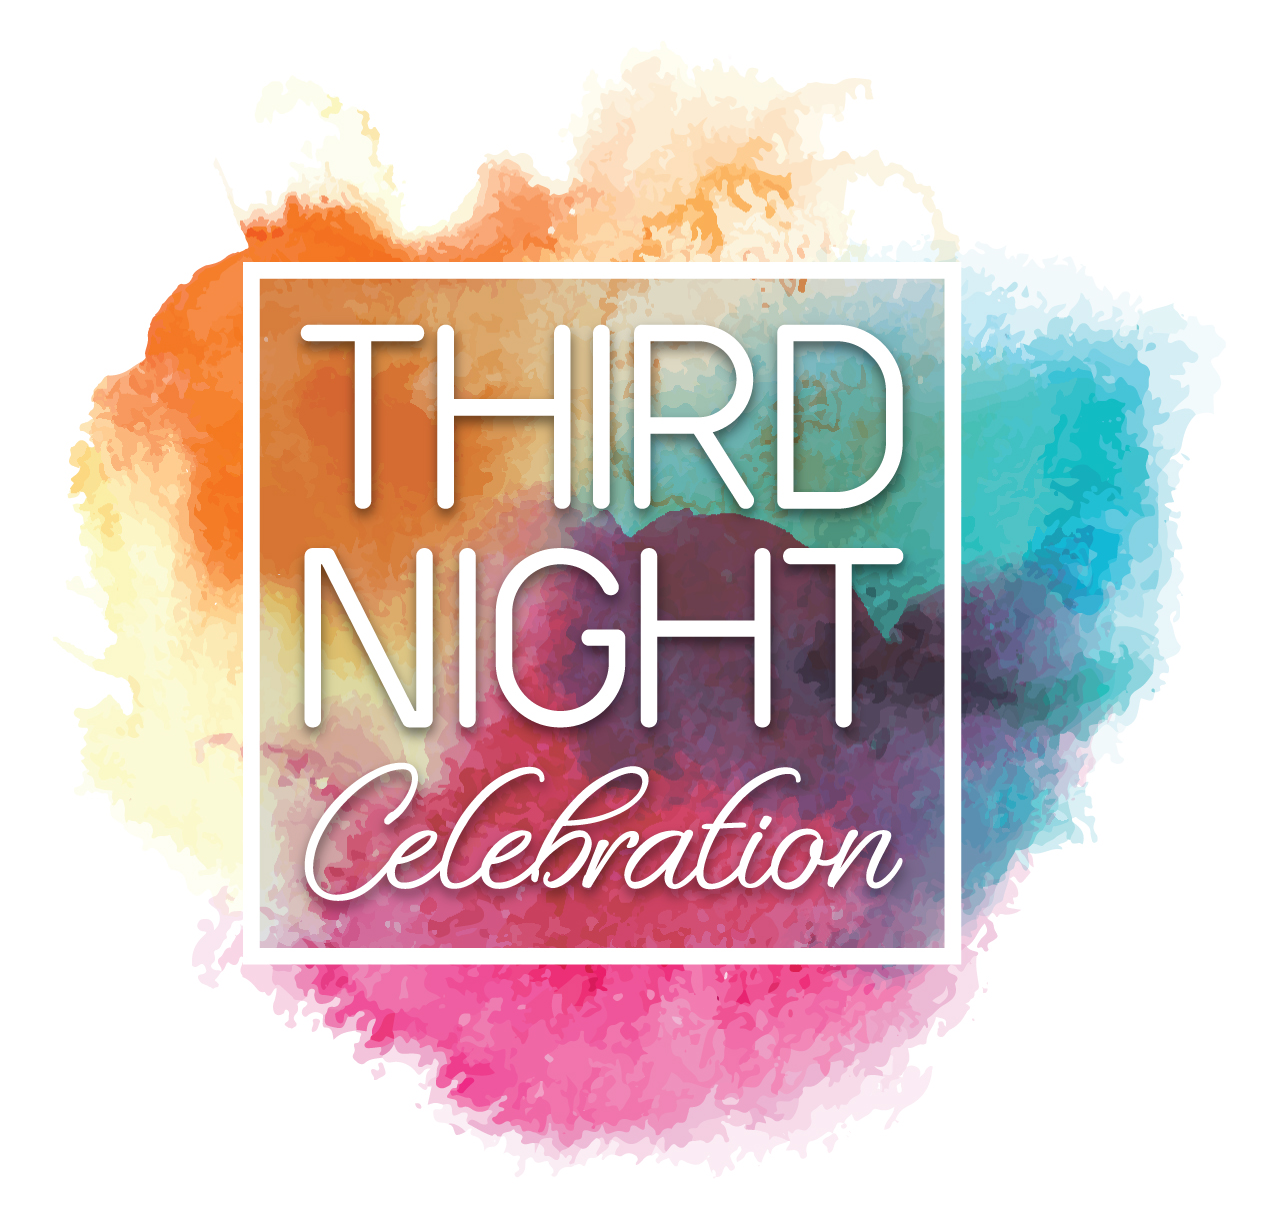 Third Night Celebration Logo.jpg